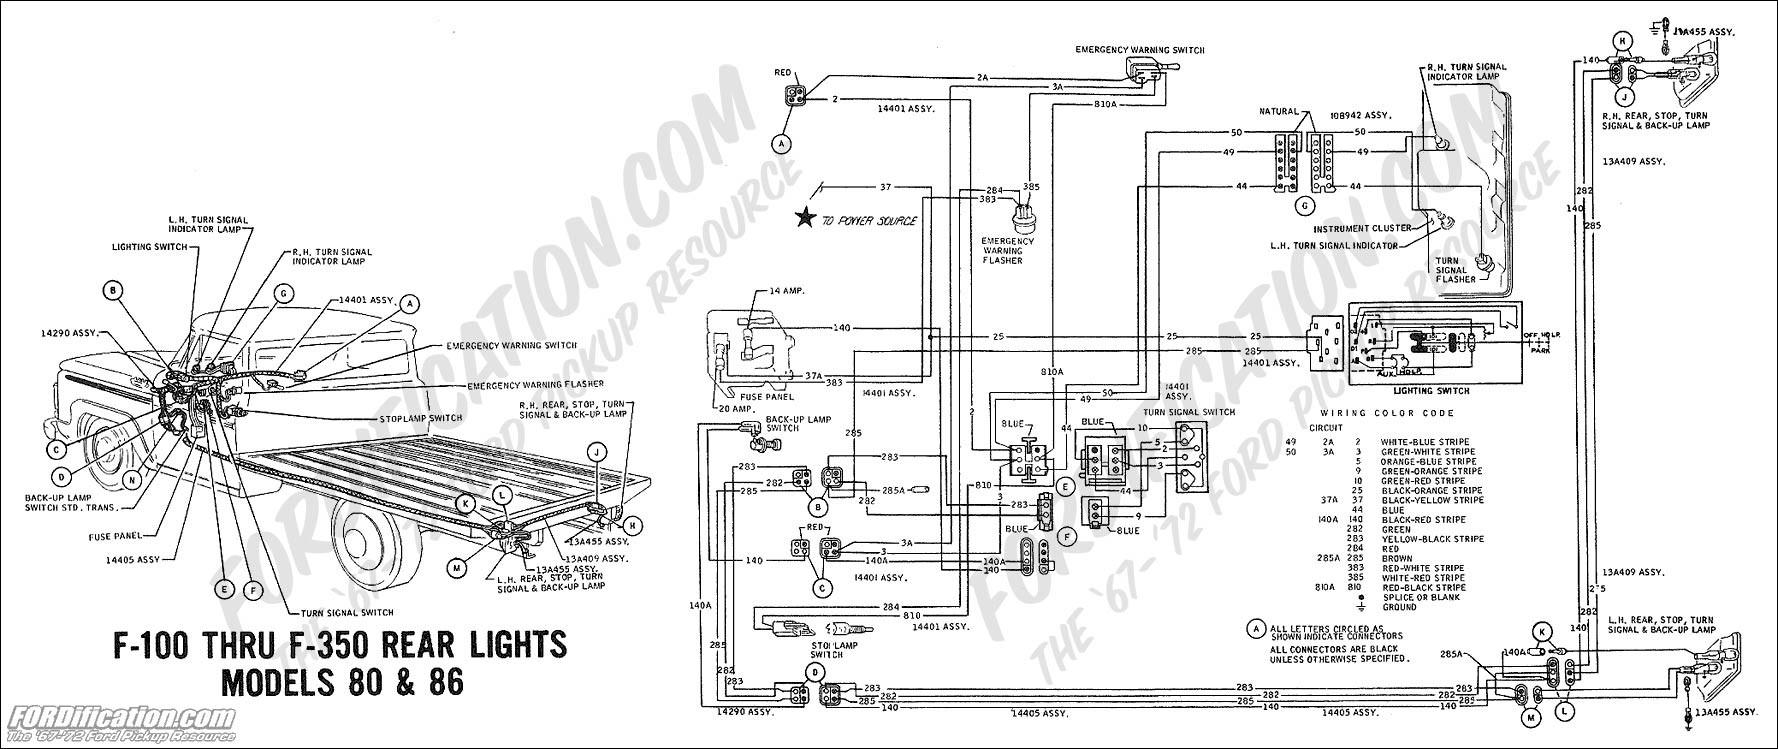 [DIAGRAM] 2013 F350 Tail Light Wiring Diagram FULL Version